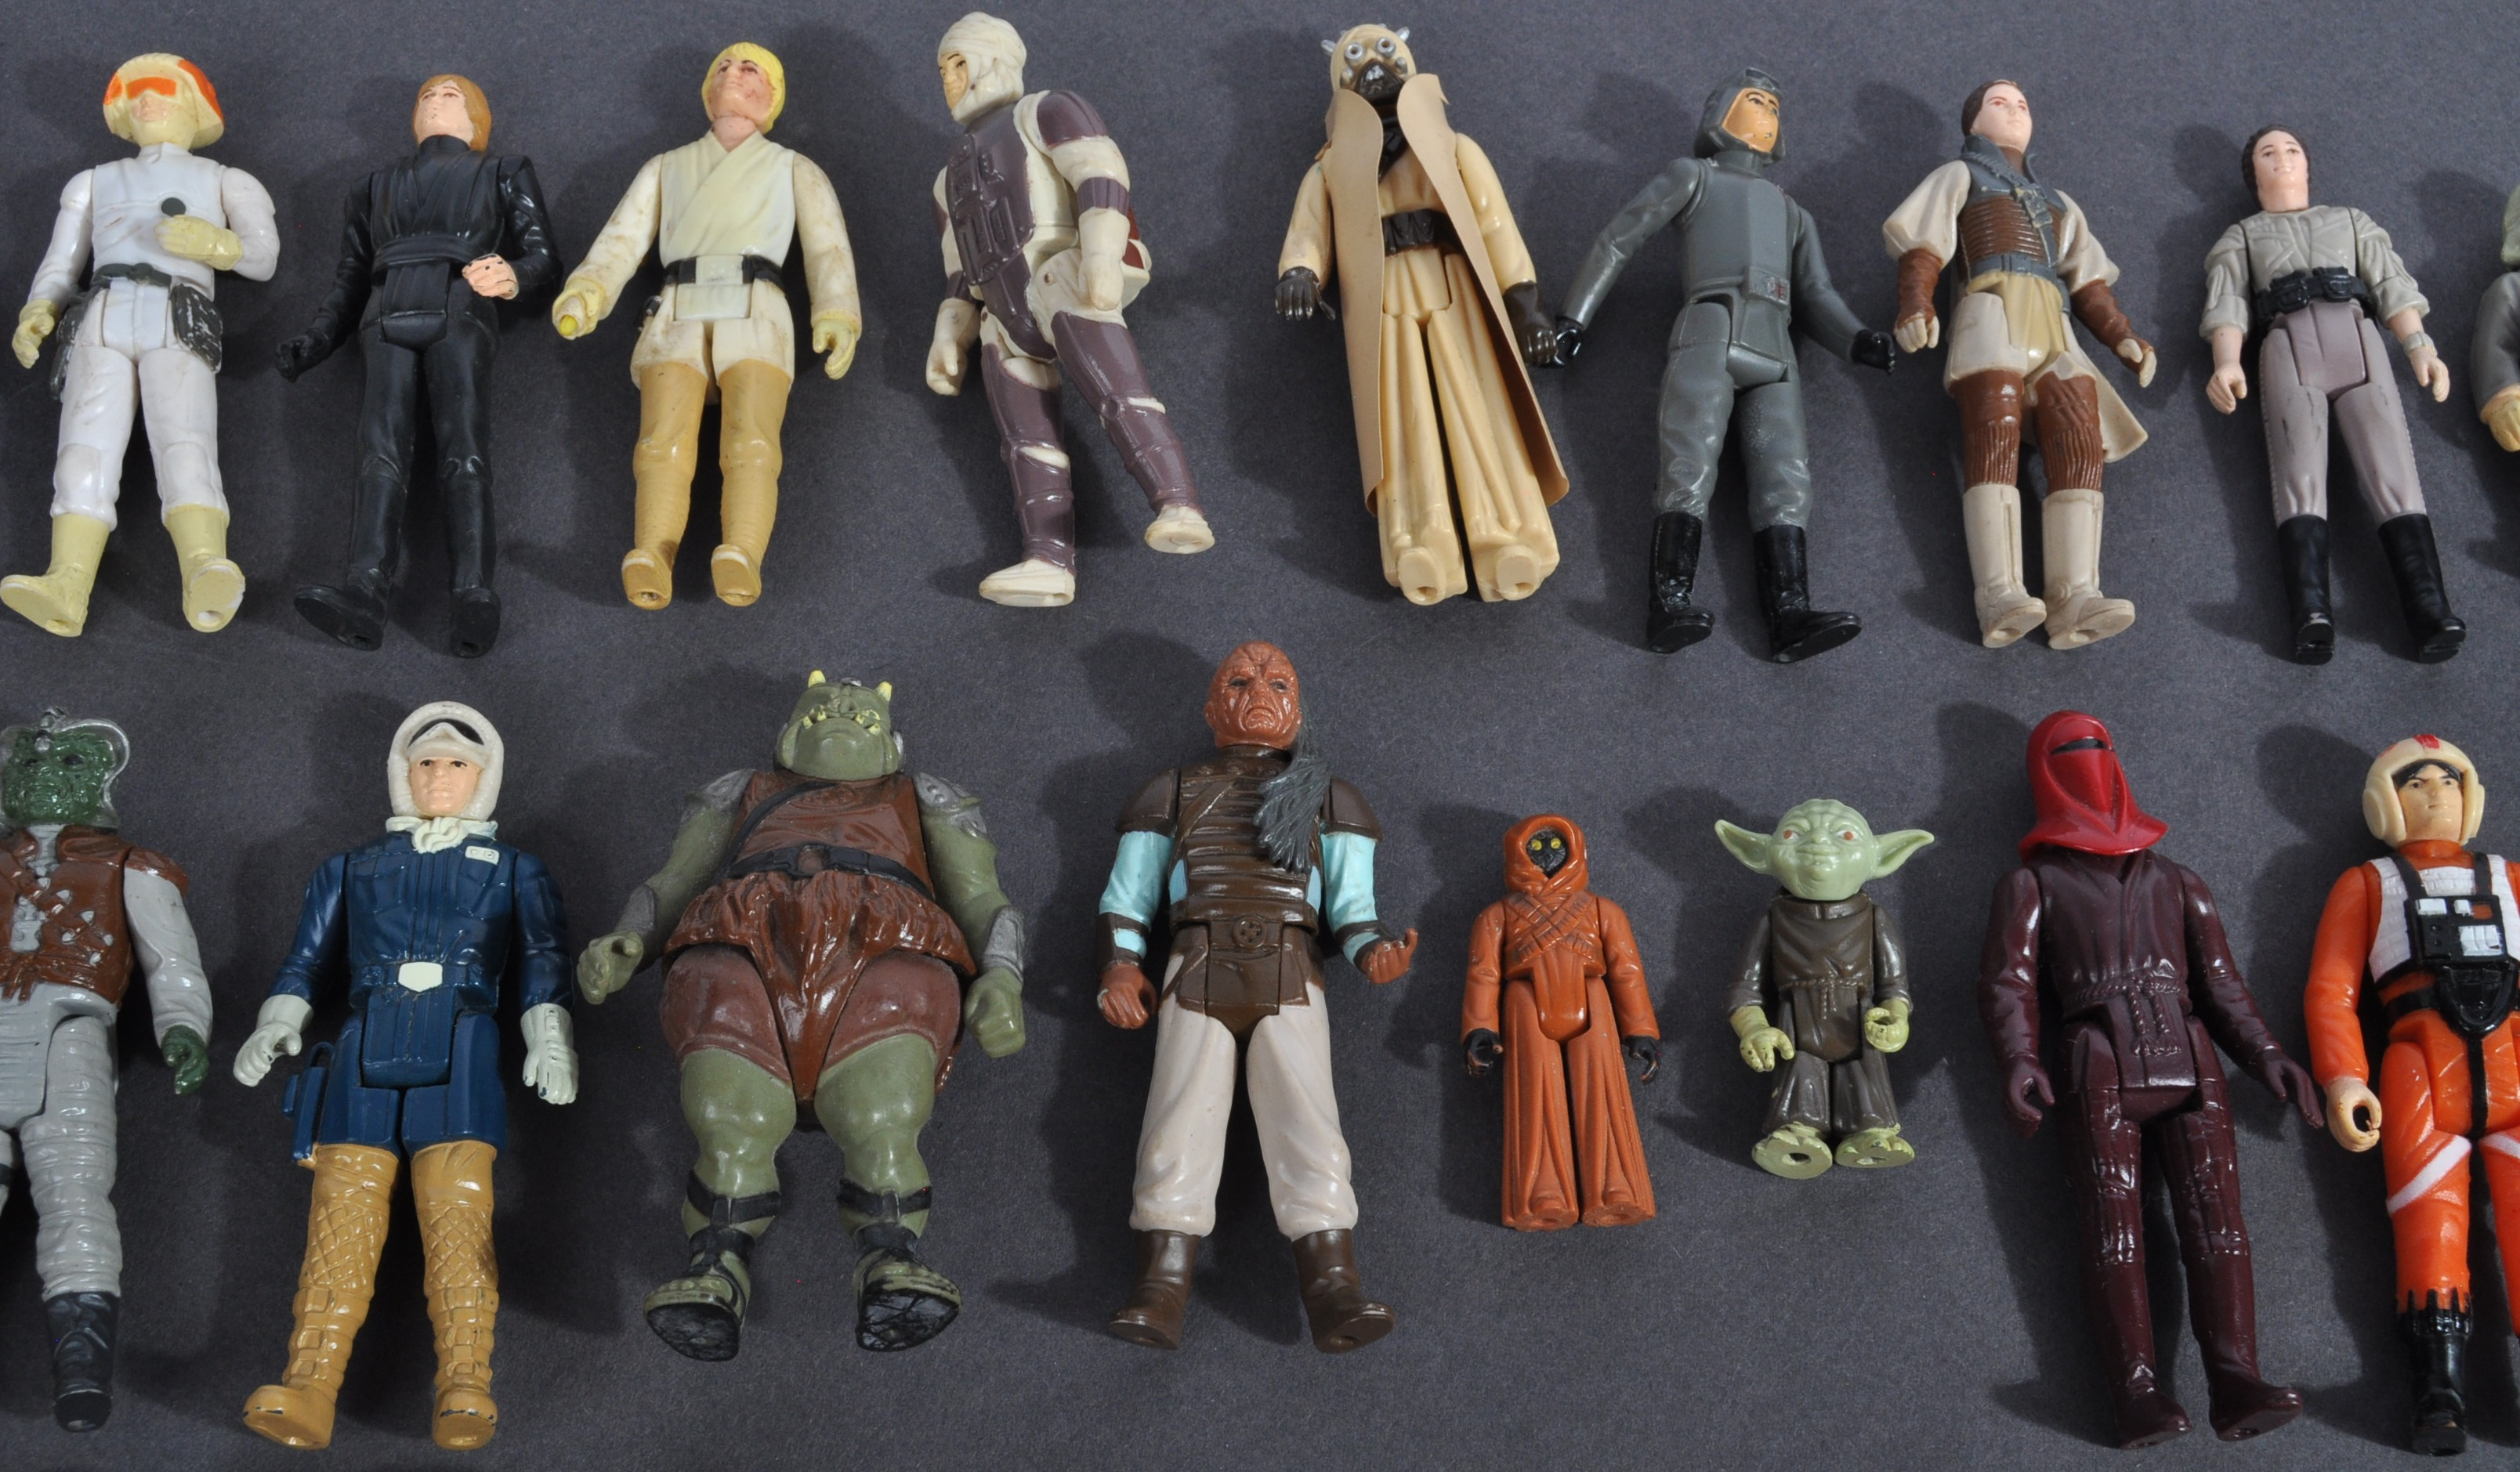 STAR WARS - COLLECTION OF VINTAGE KENNER / PALITOY ACTION FIGURES - Image 3 of 7